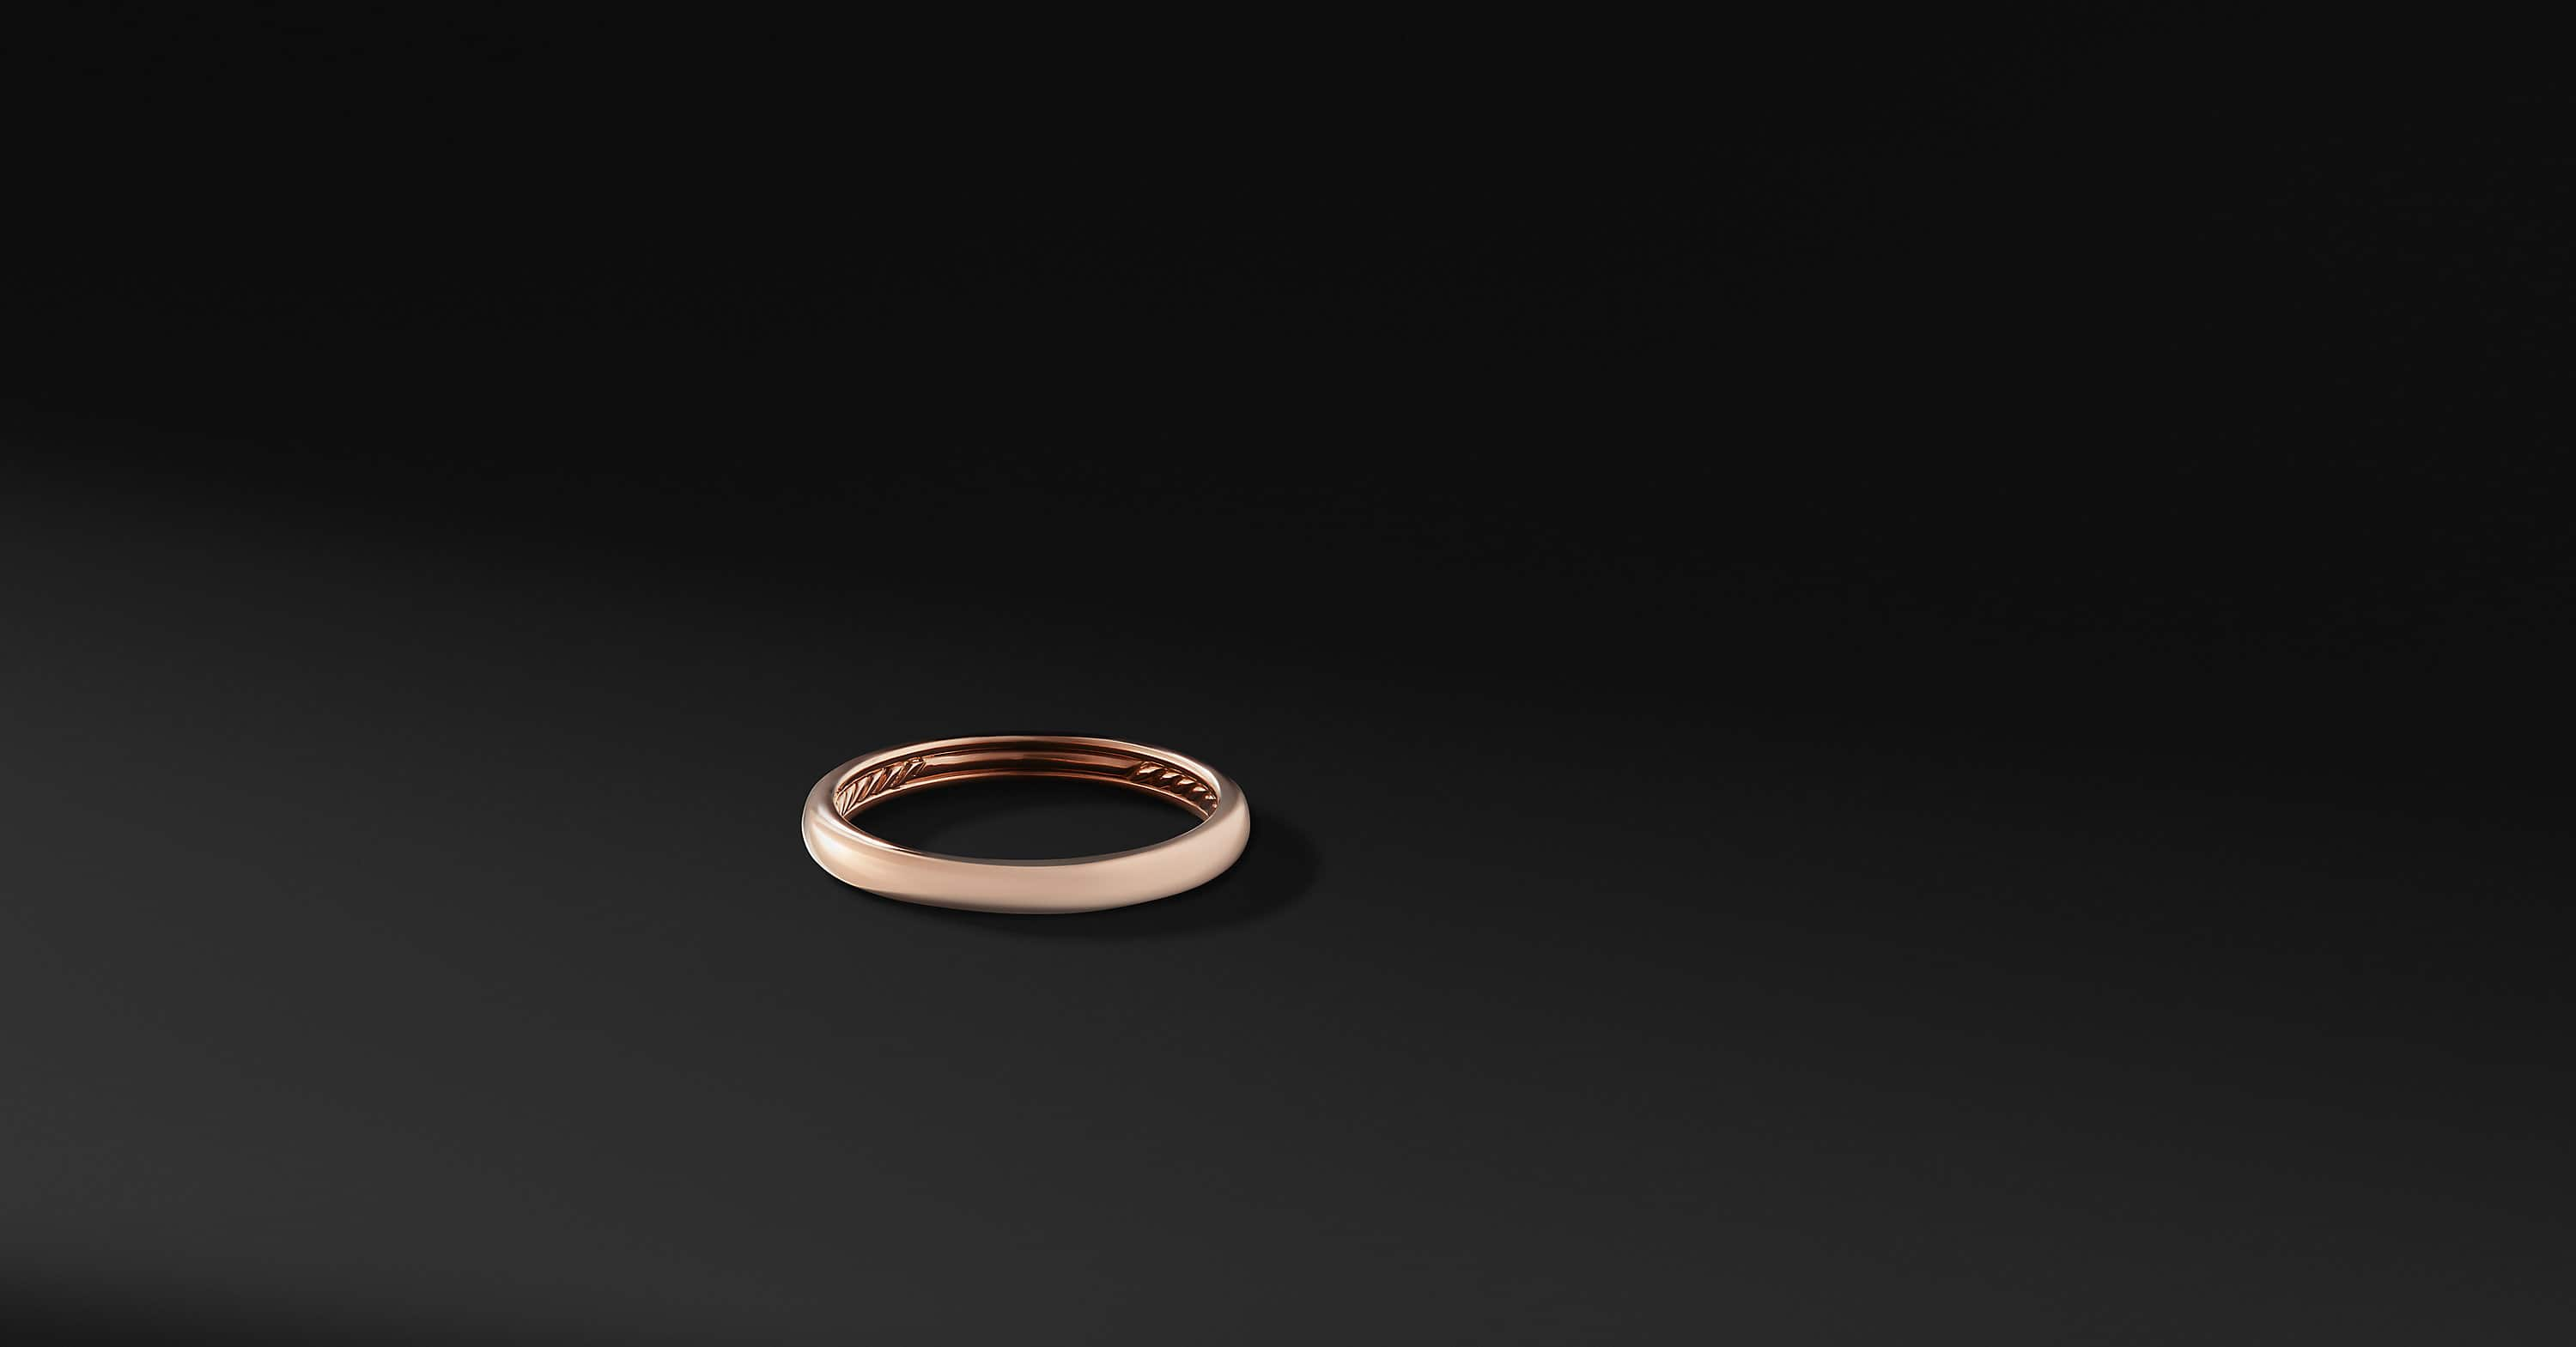 DY Classic Band in 18K Rose Gold, 3mm